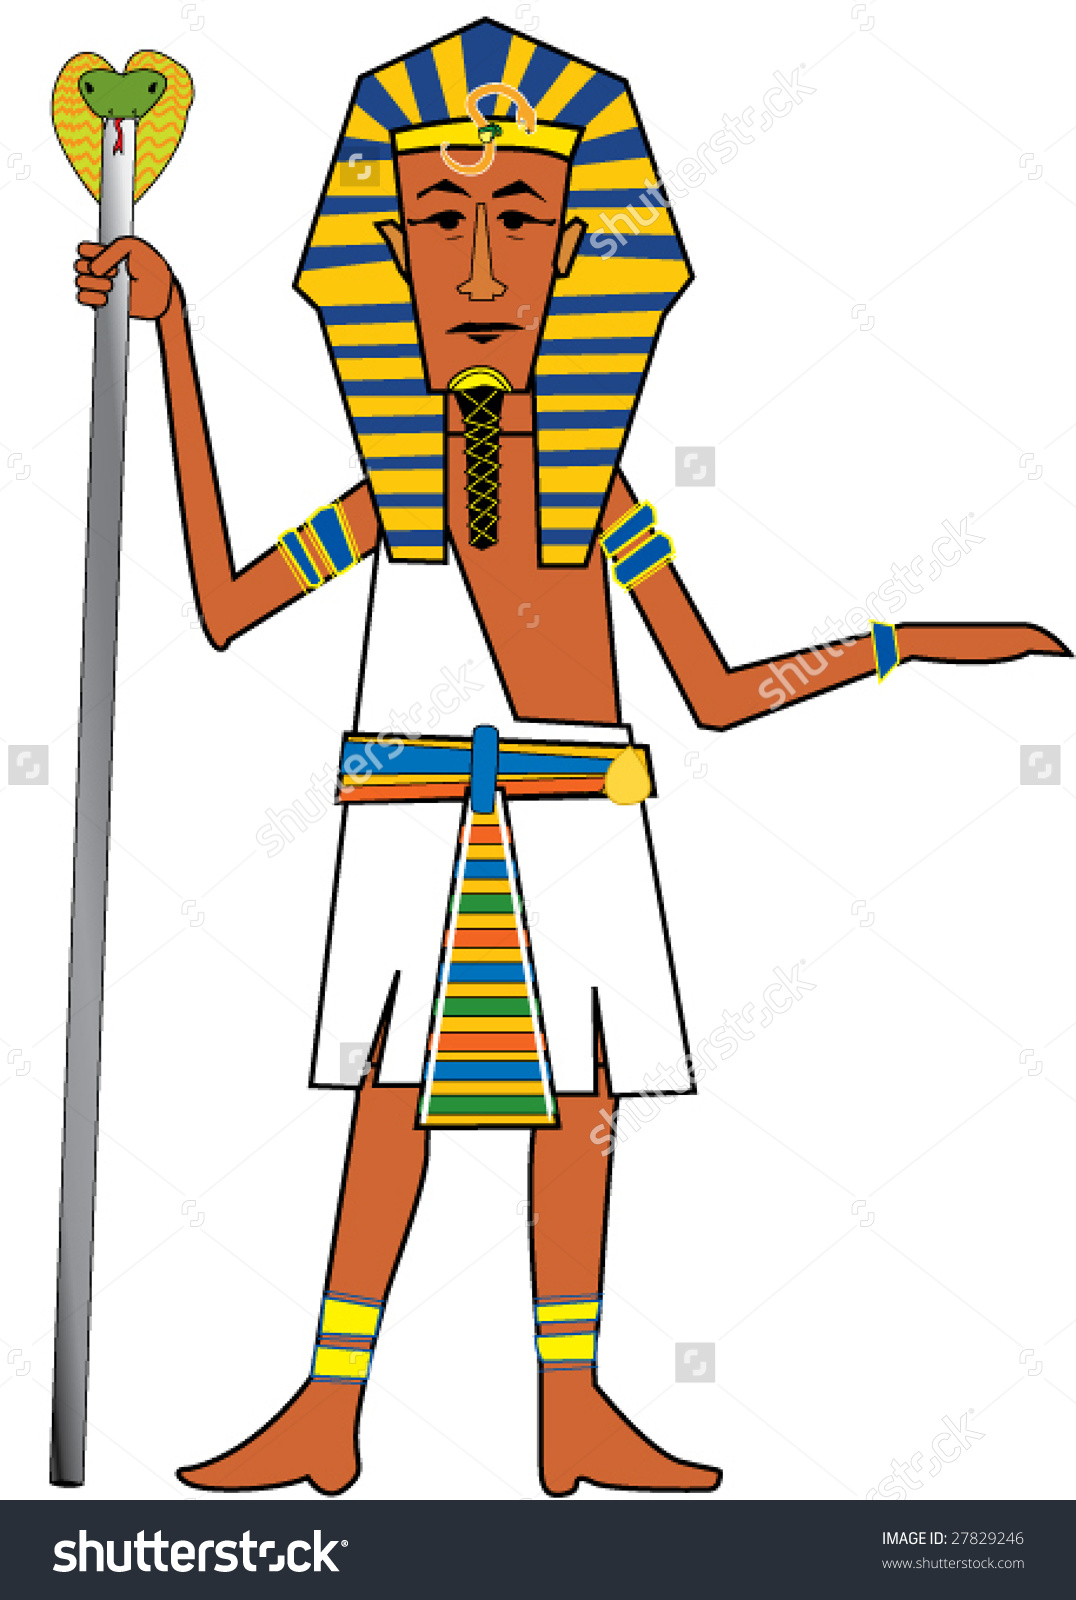 Egypt clipart moses pharaoh, Picture #2645911 egypt clipart.